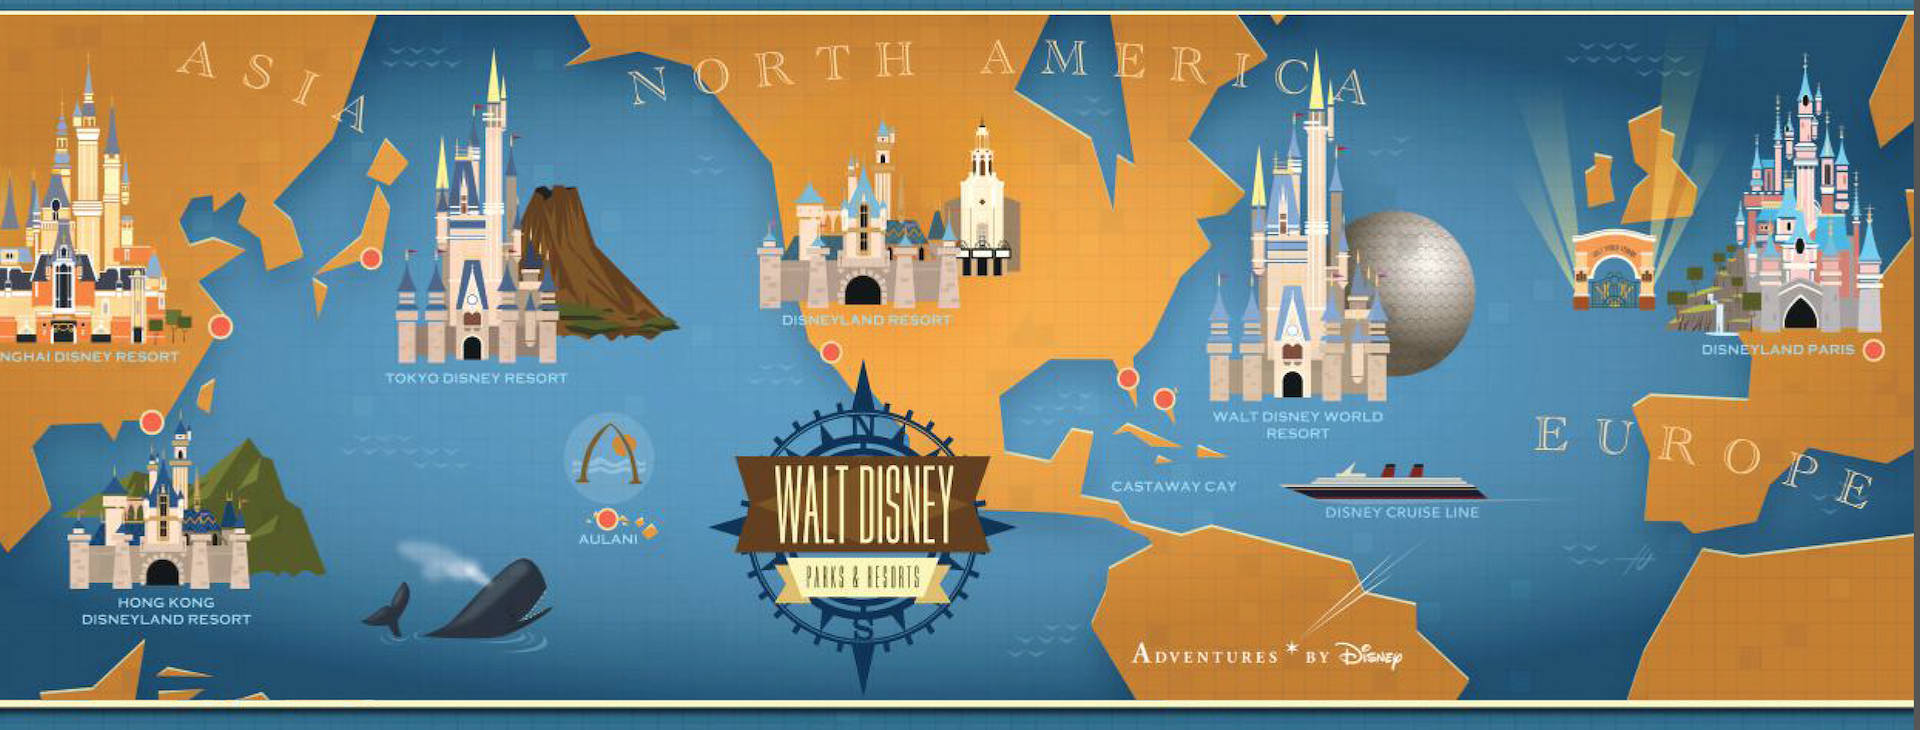 Walt disney parks and resorts growth fact sheet disney parks blog overview of walt disney parks and resorts freerunsca Choice Image